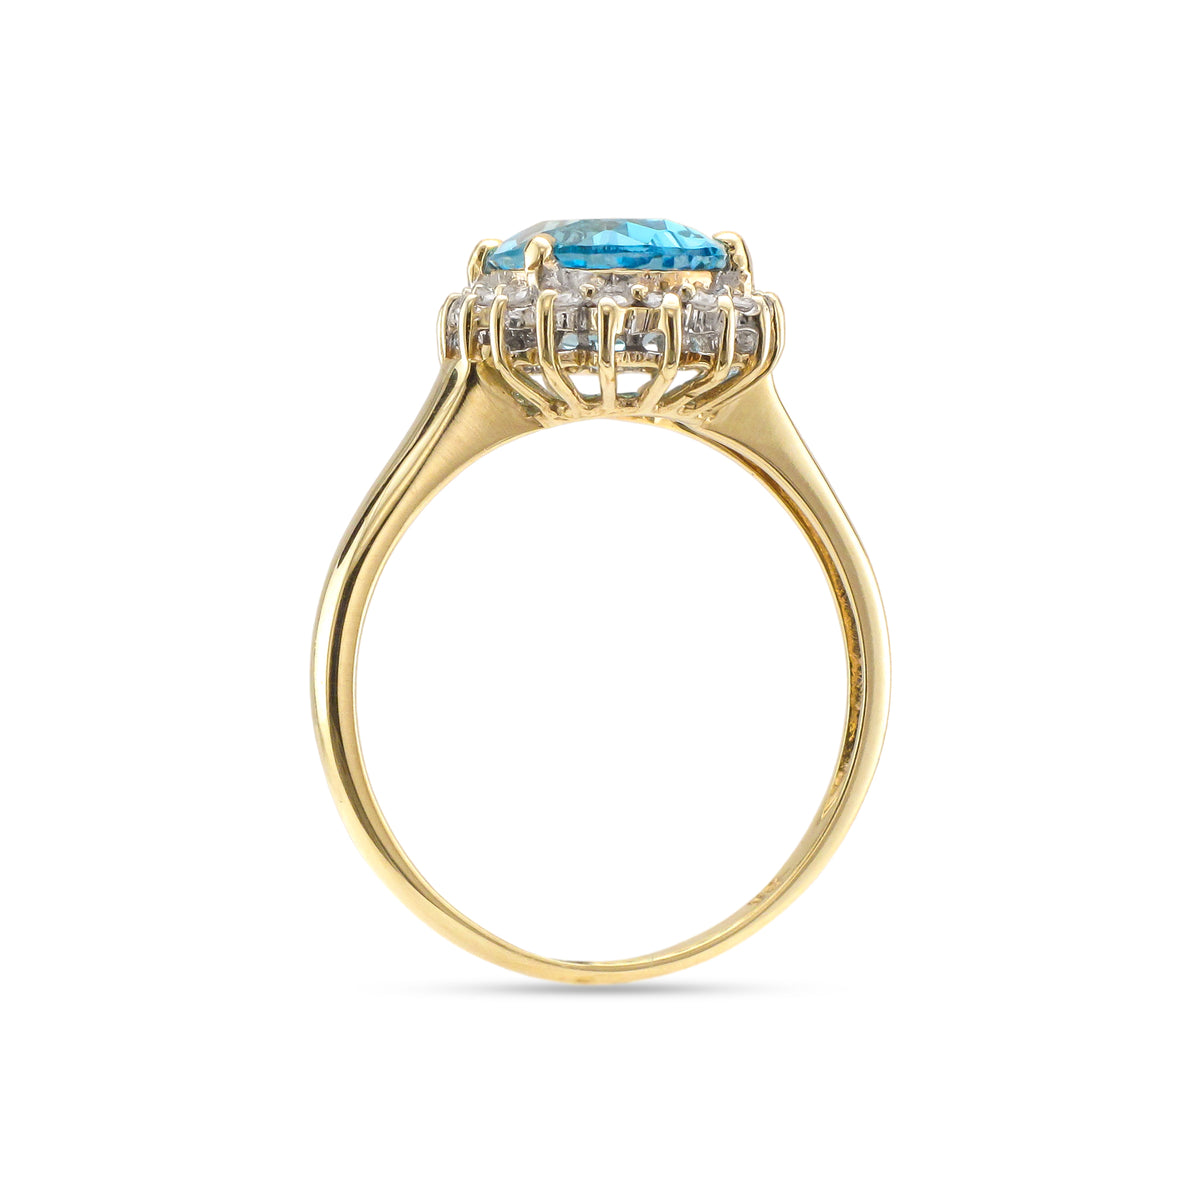 Vintage 9ct Yellow Gold Topaz and Diamond Ring